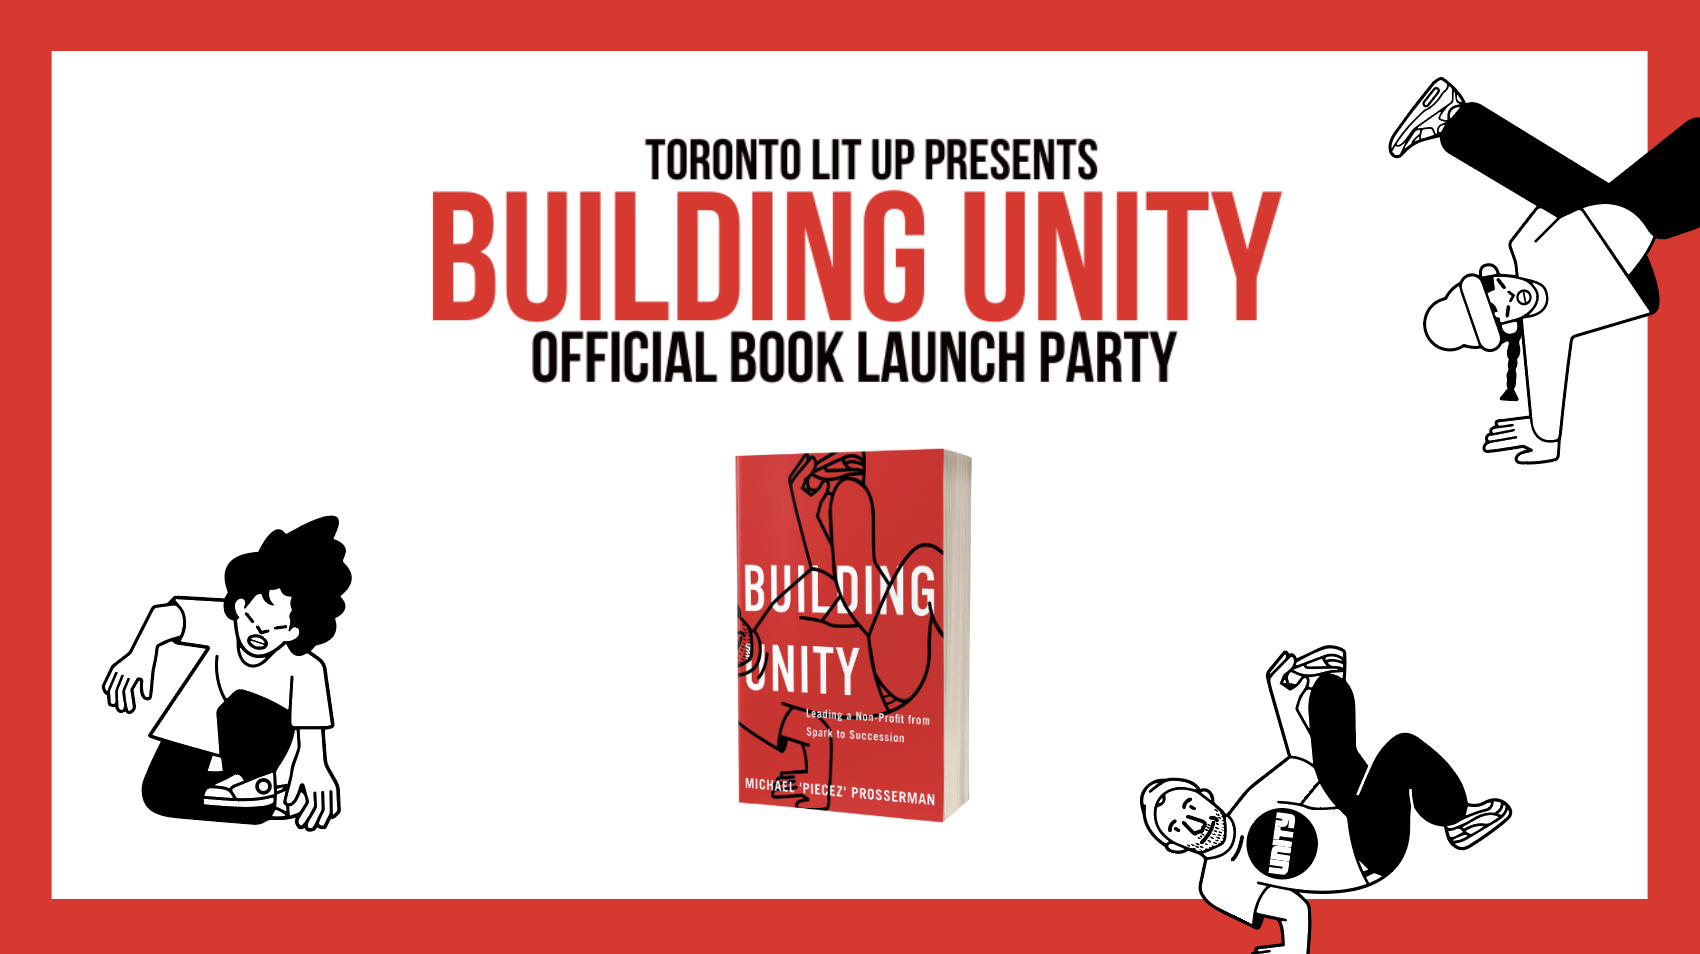 BUILDING UNITY BOOK LAUNCH PARTY!